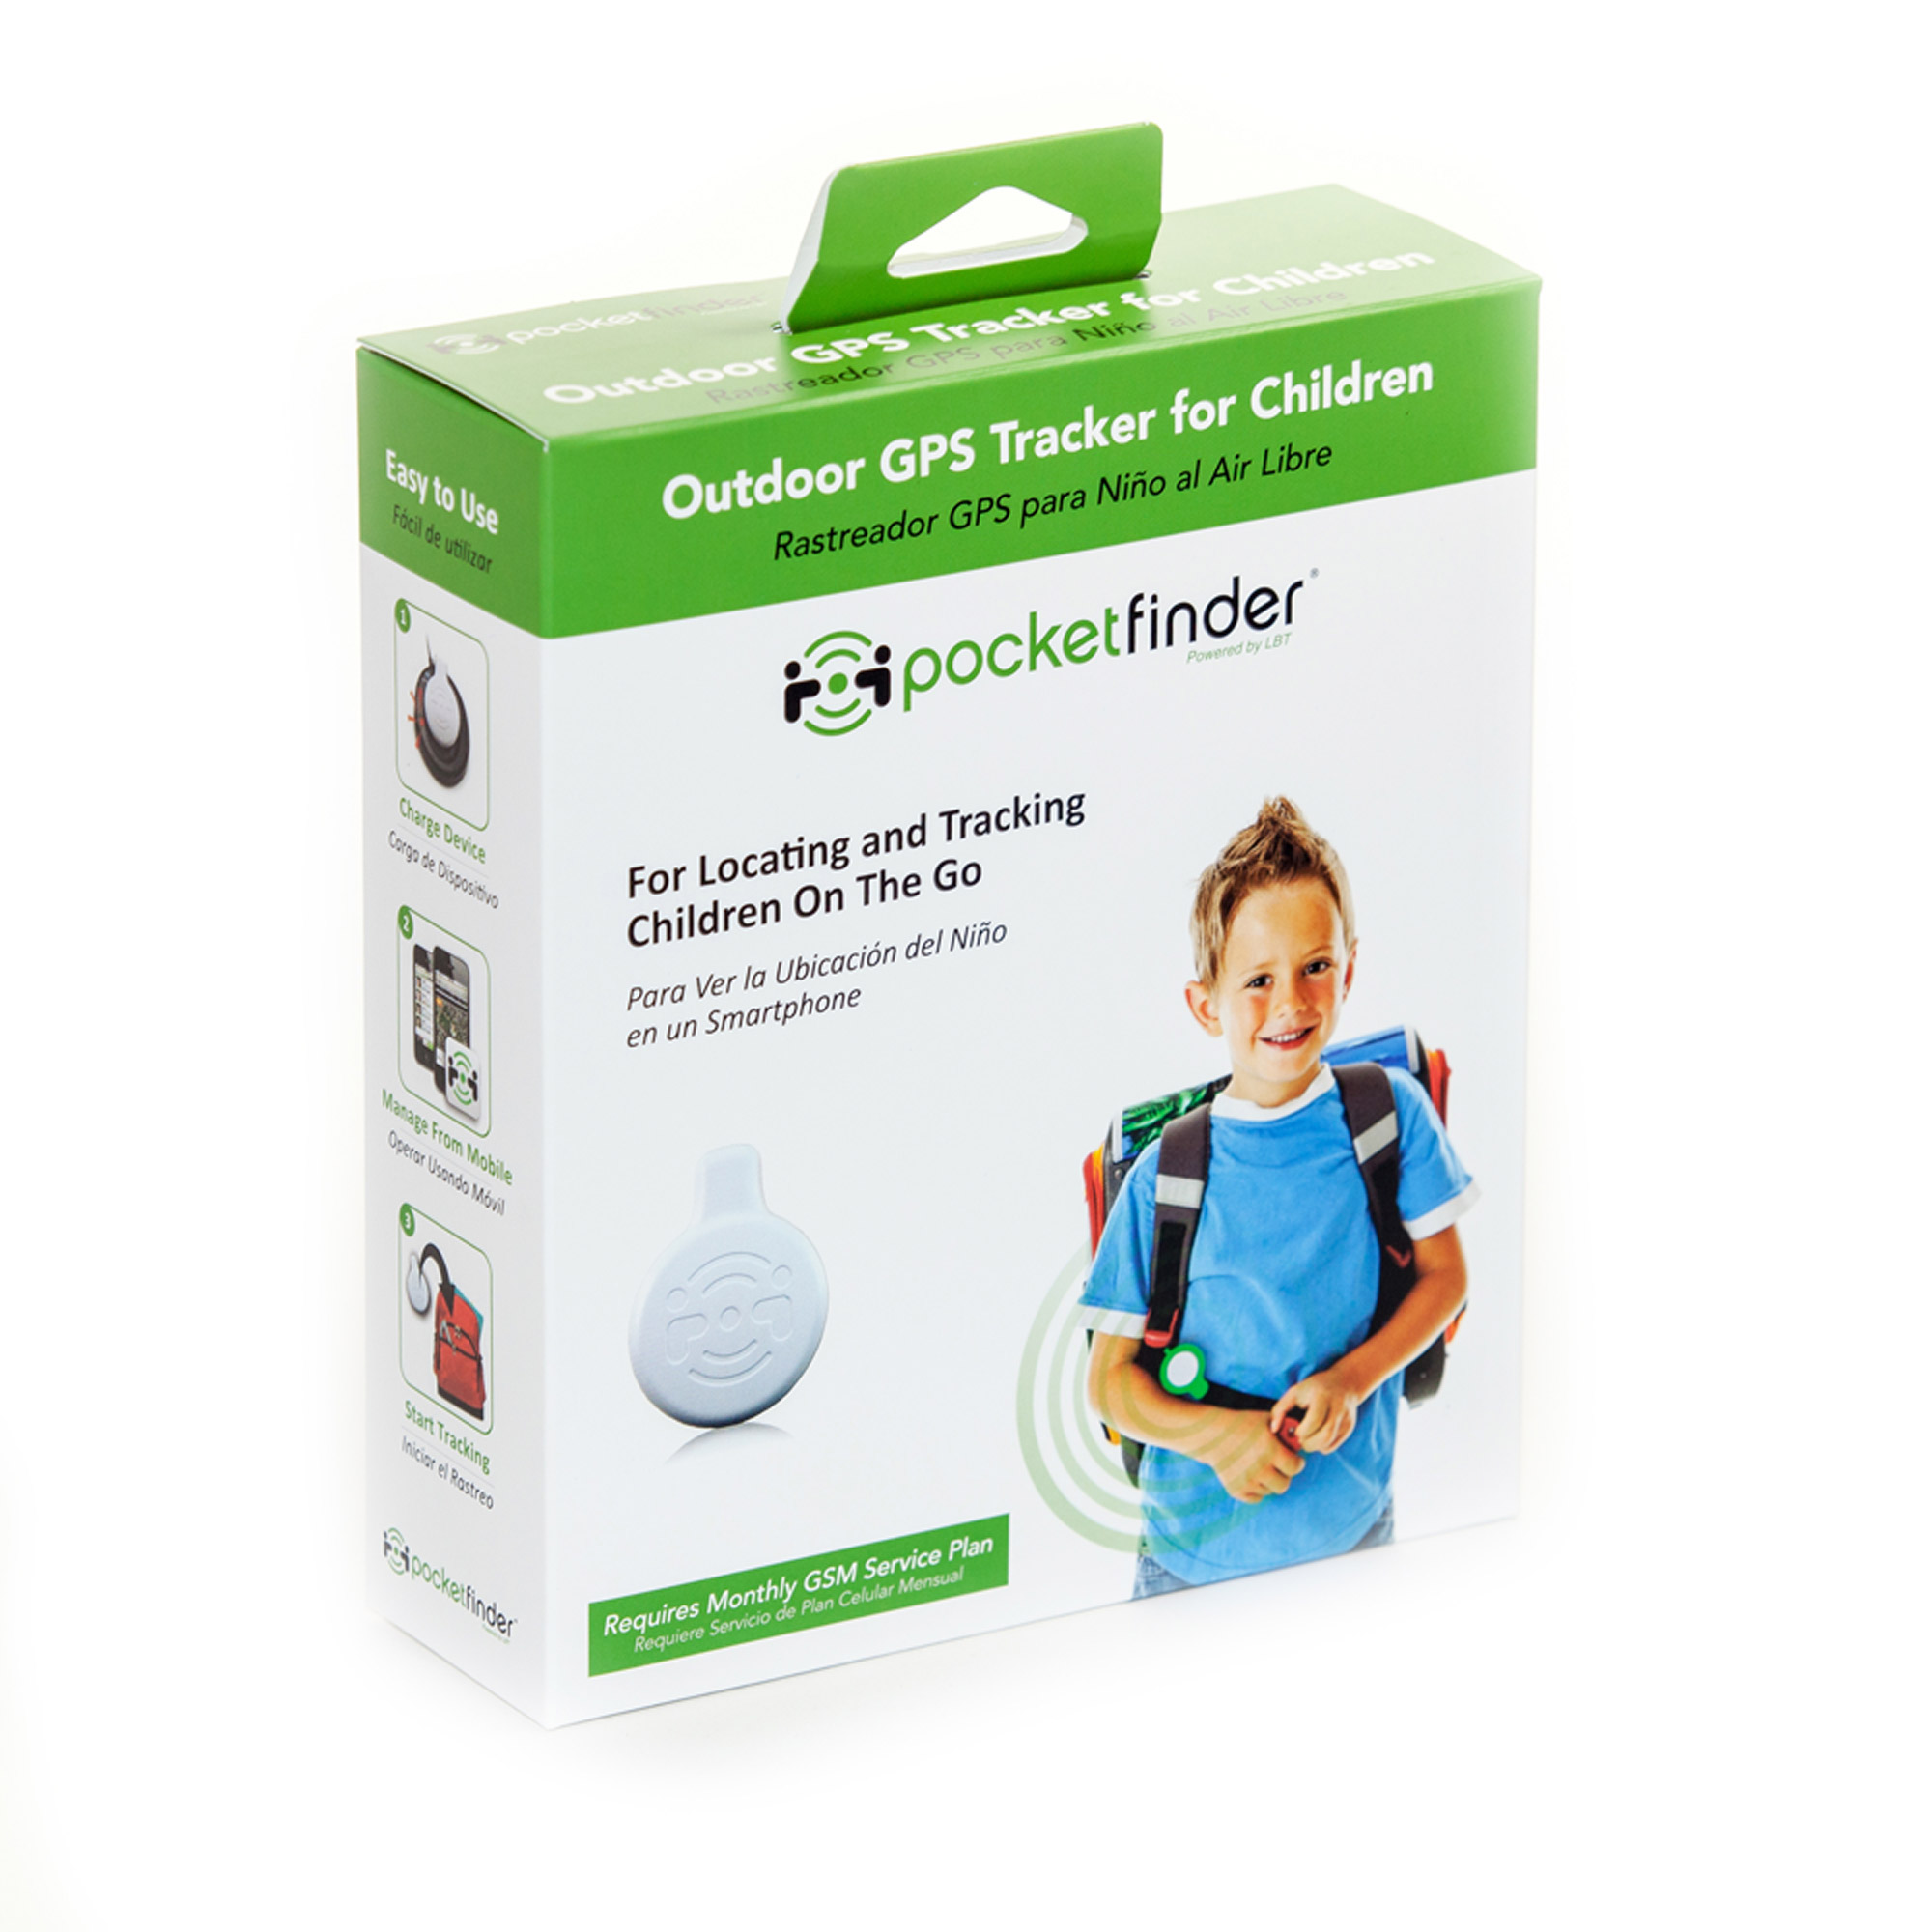 PocketFinder GPS Child Tracker